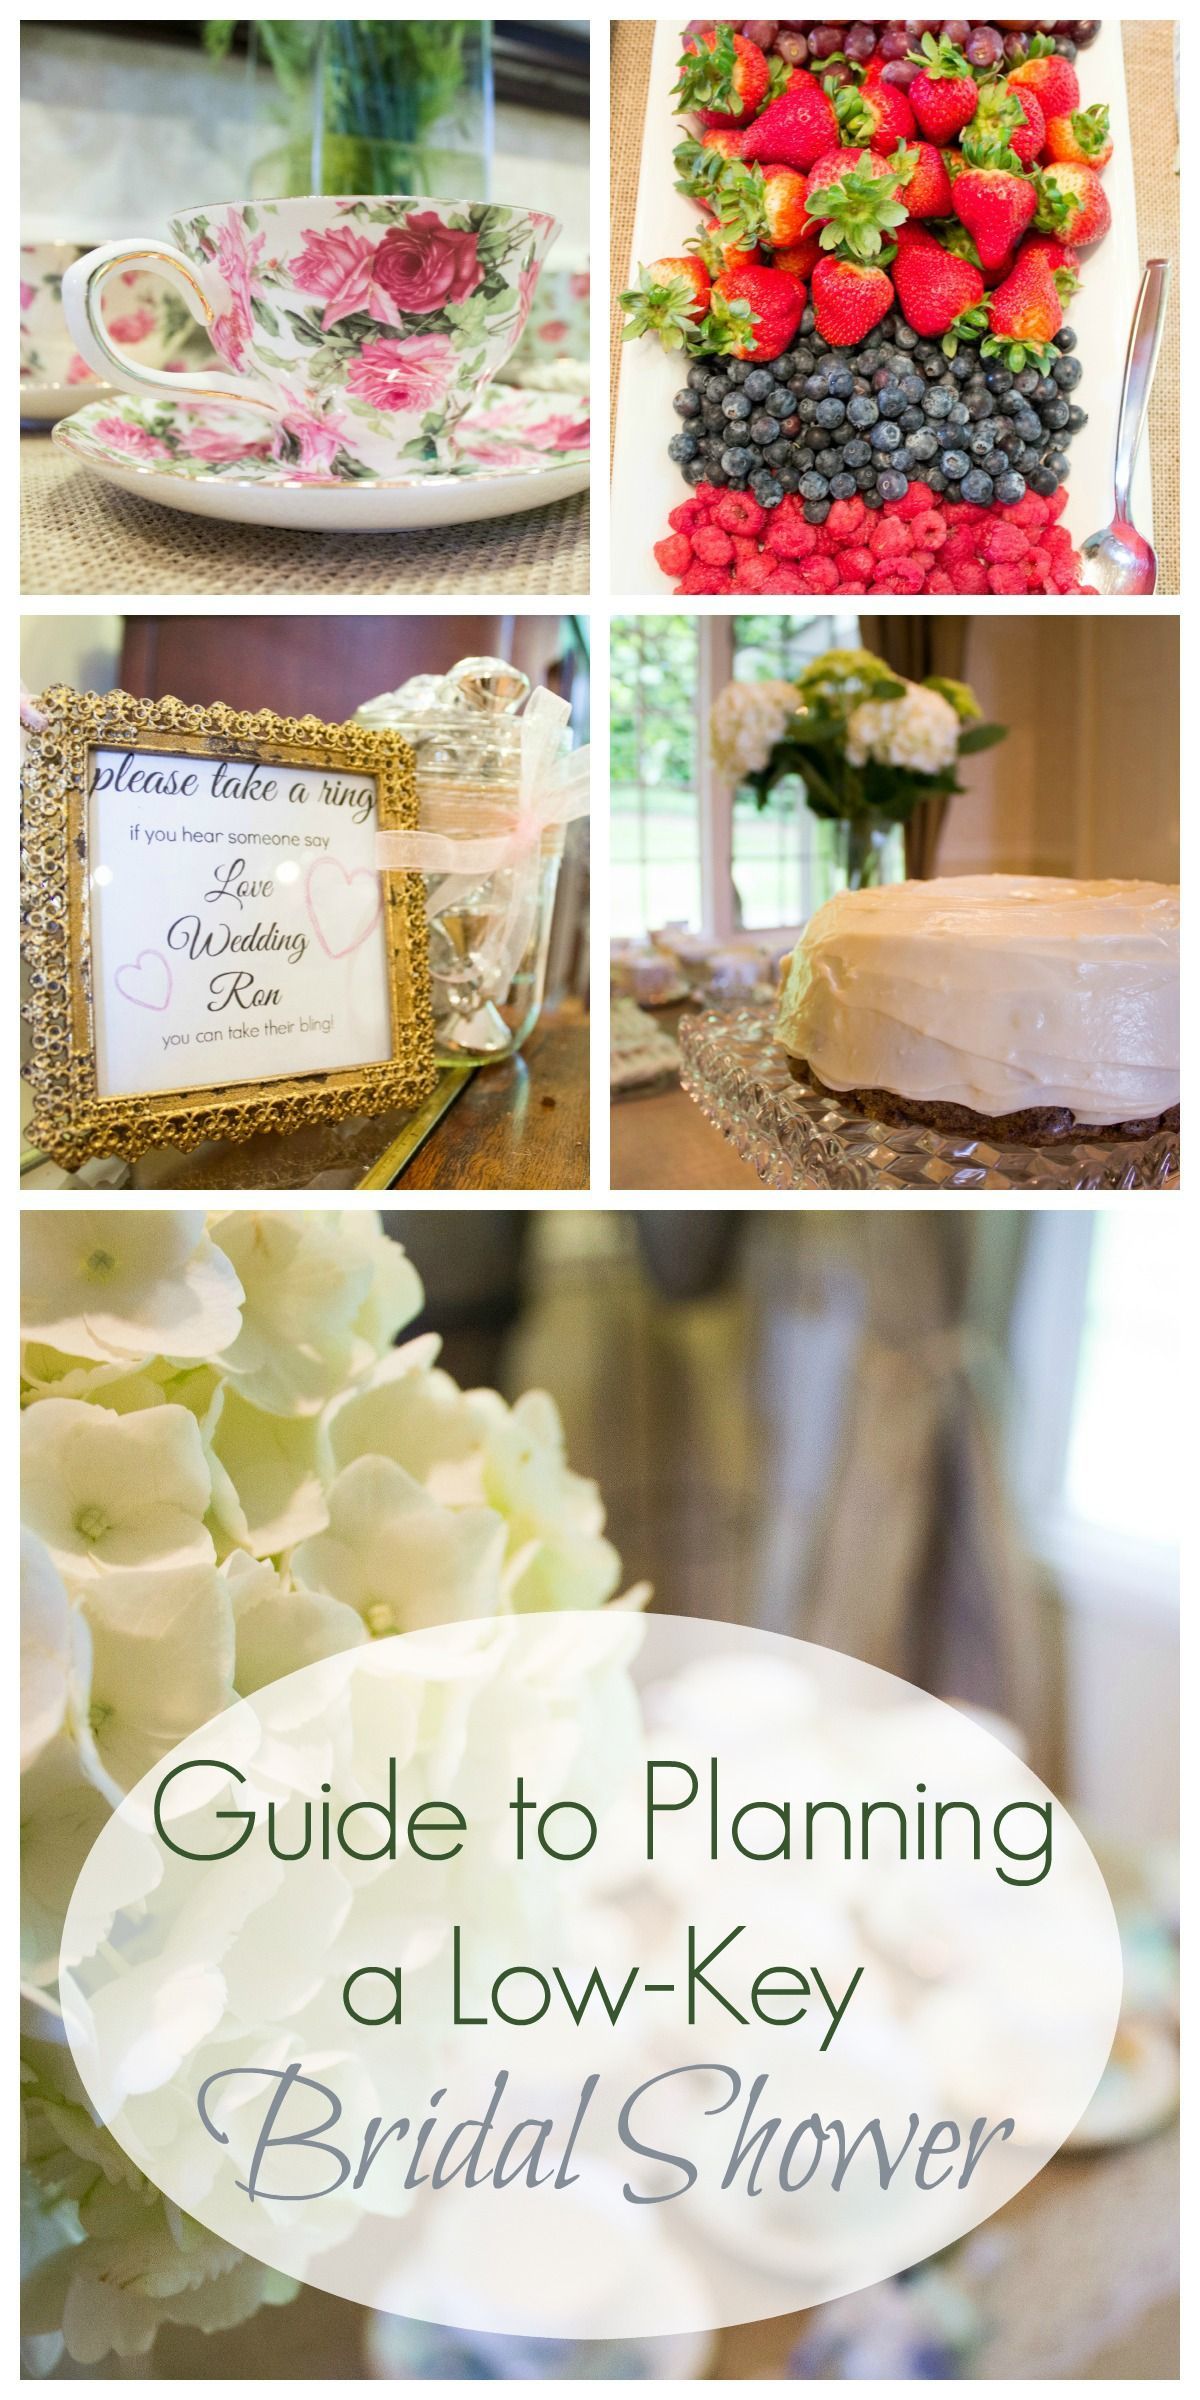 have a low maintenance bride plan a beautiful stunning low key bridal shower with this helpful guide includes food games activities flowers